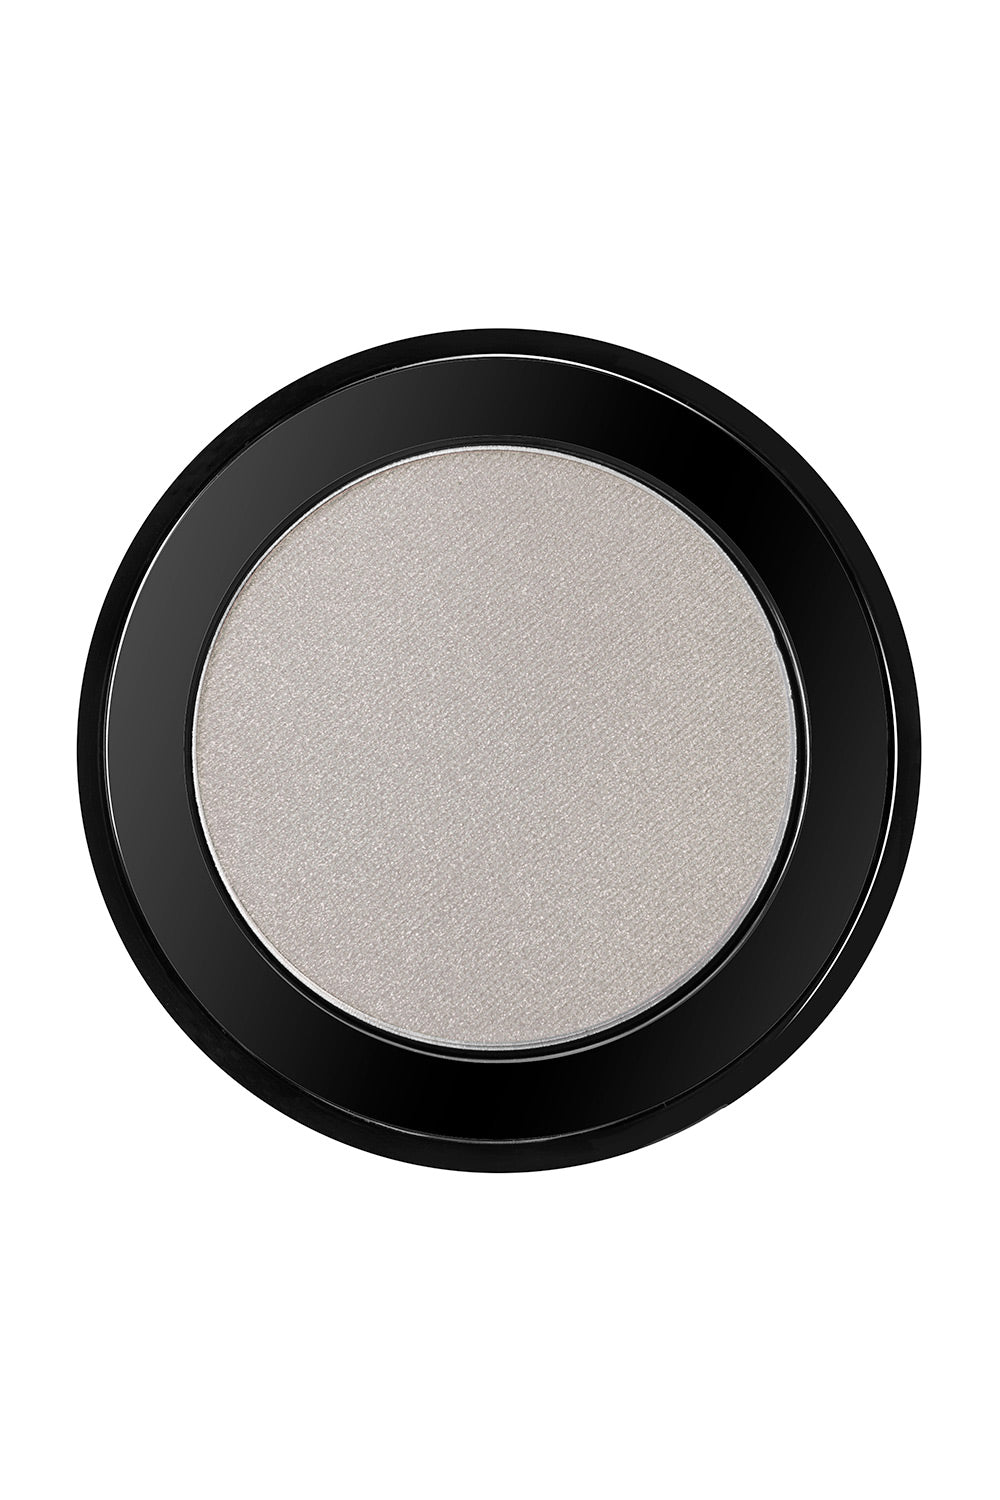 Type 4 Eyeshadow - Platinum